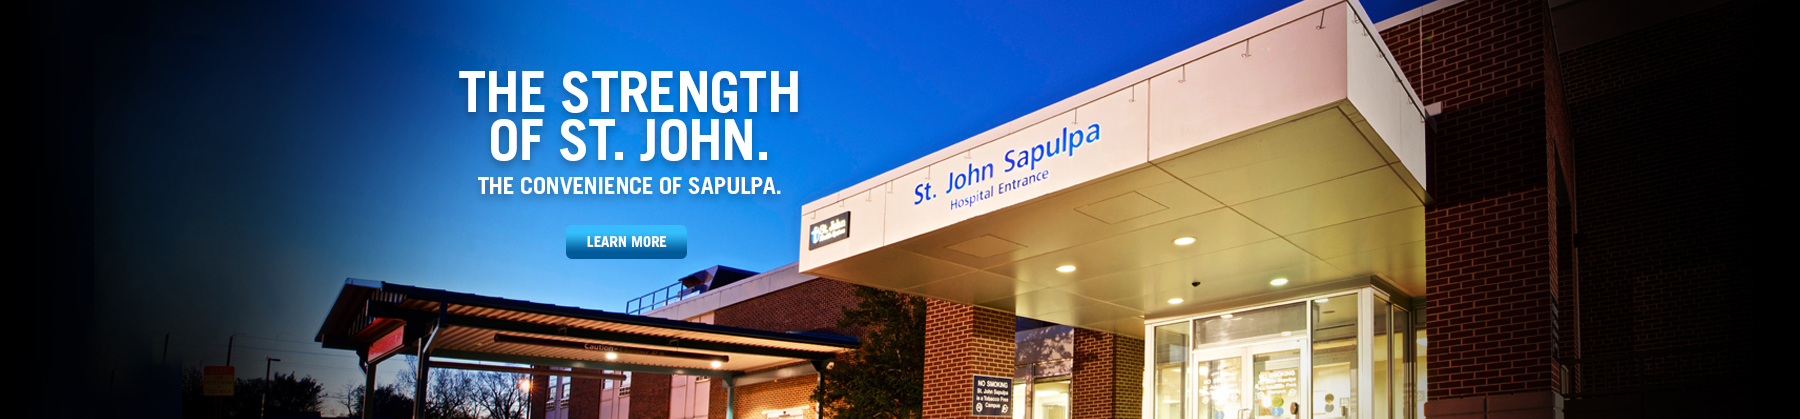 The Strength of St. John - Sapulpa